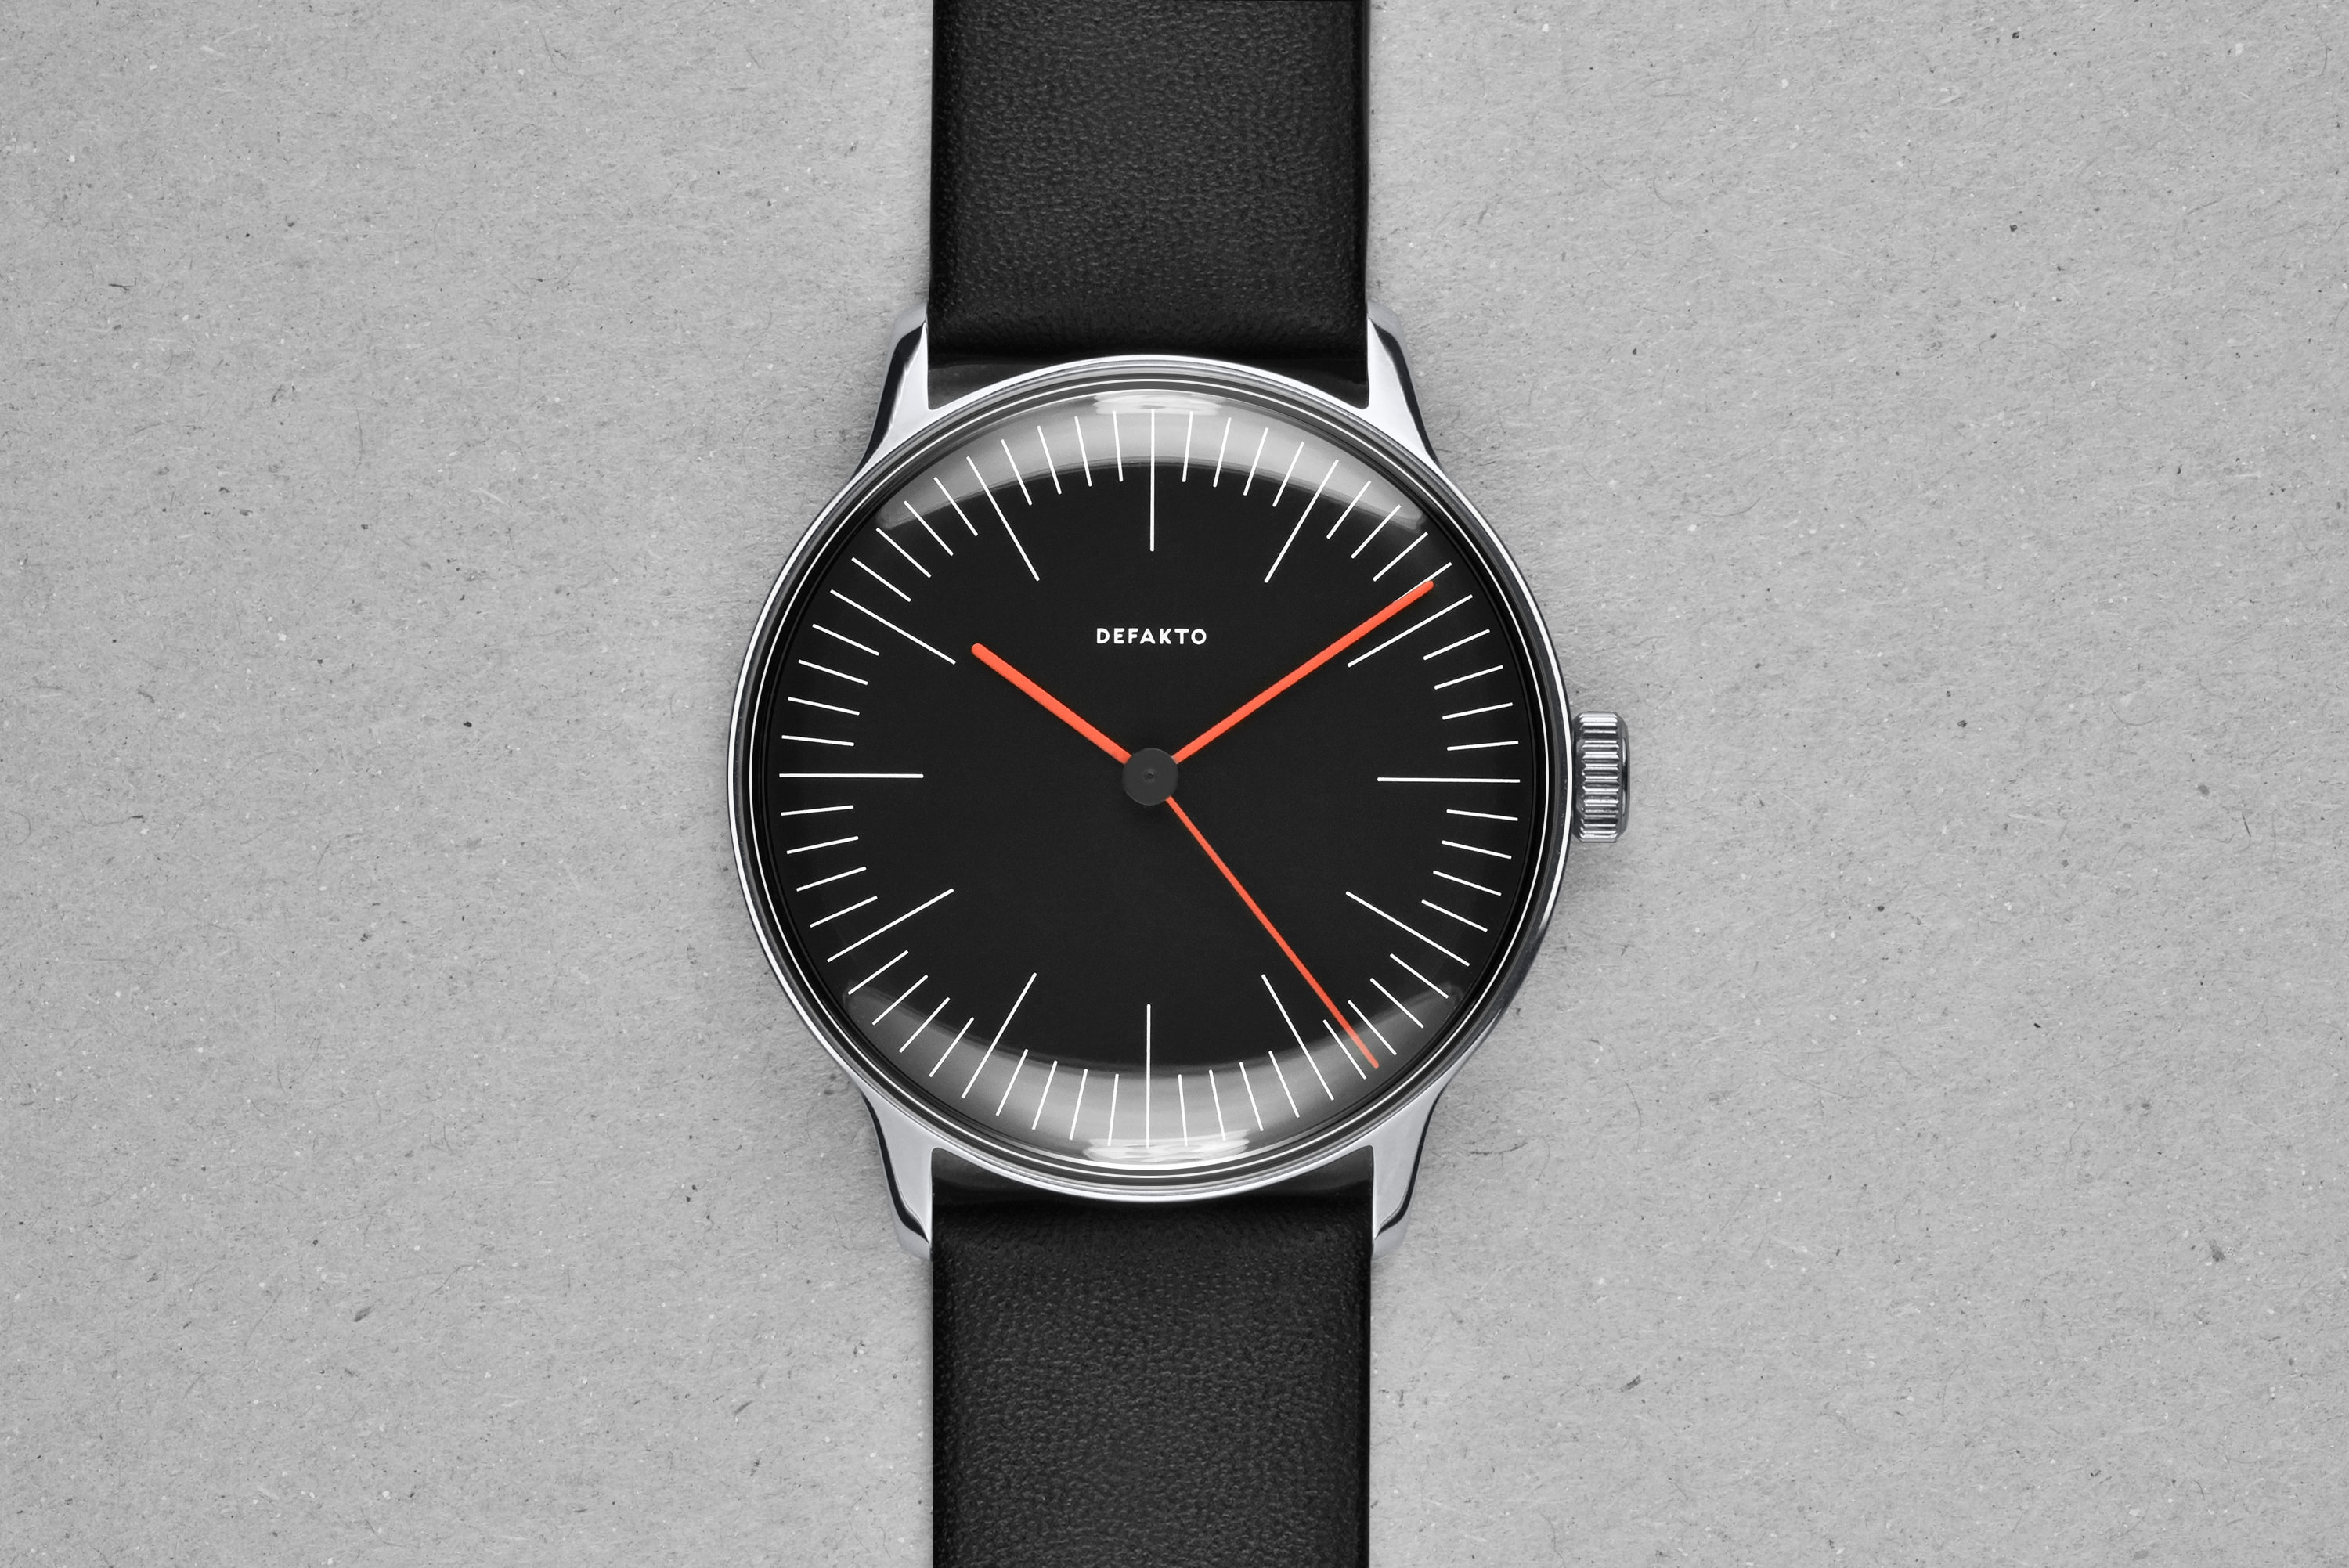 watches tangramatic r bauhaus to me comments new newtome perlon on